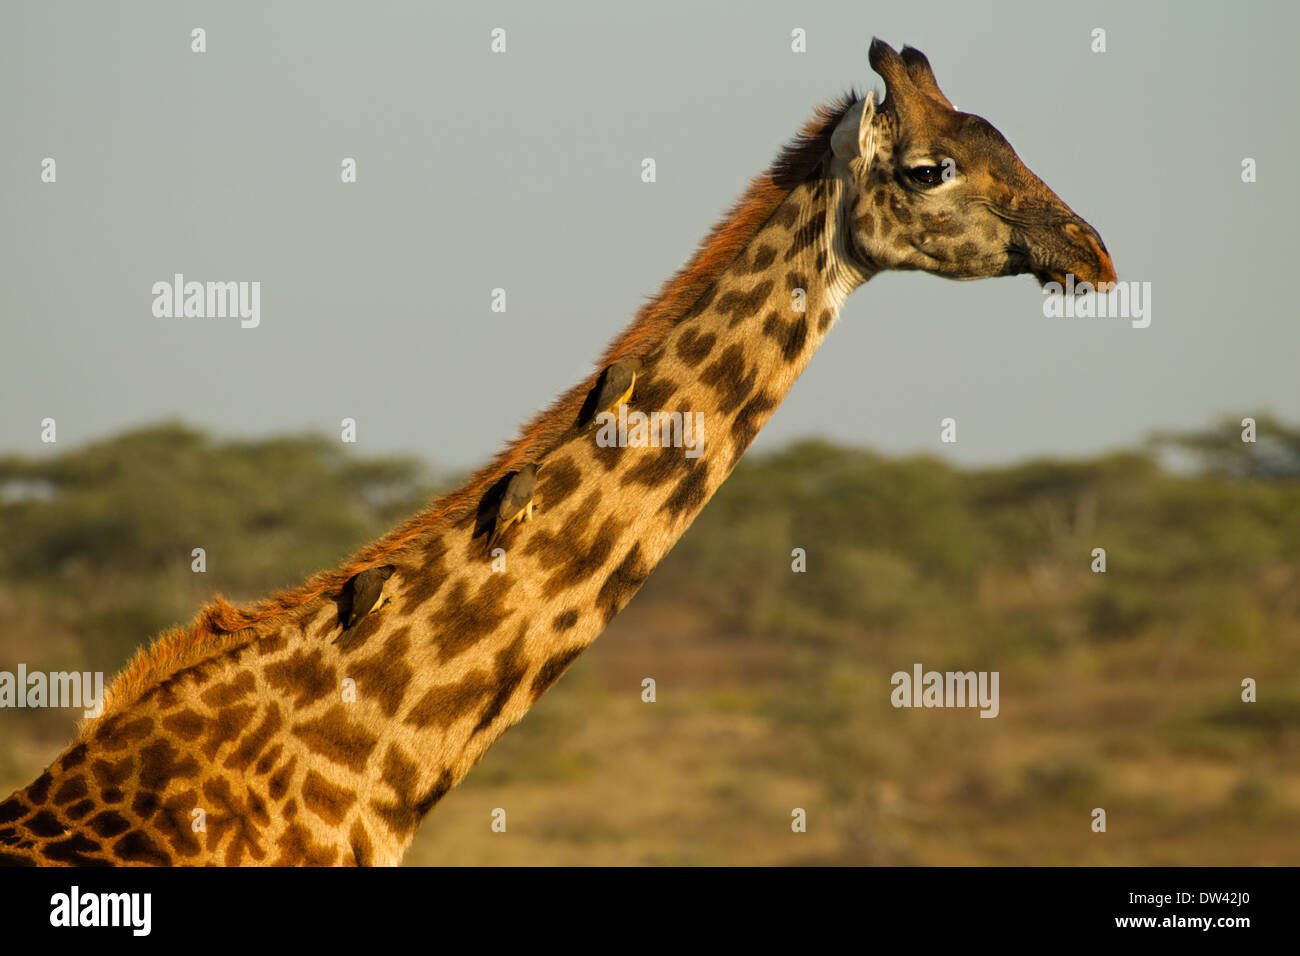 Maasai or Plains Giraffe with Oxpeckers - Stock Image